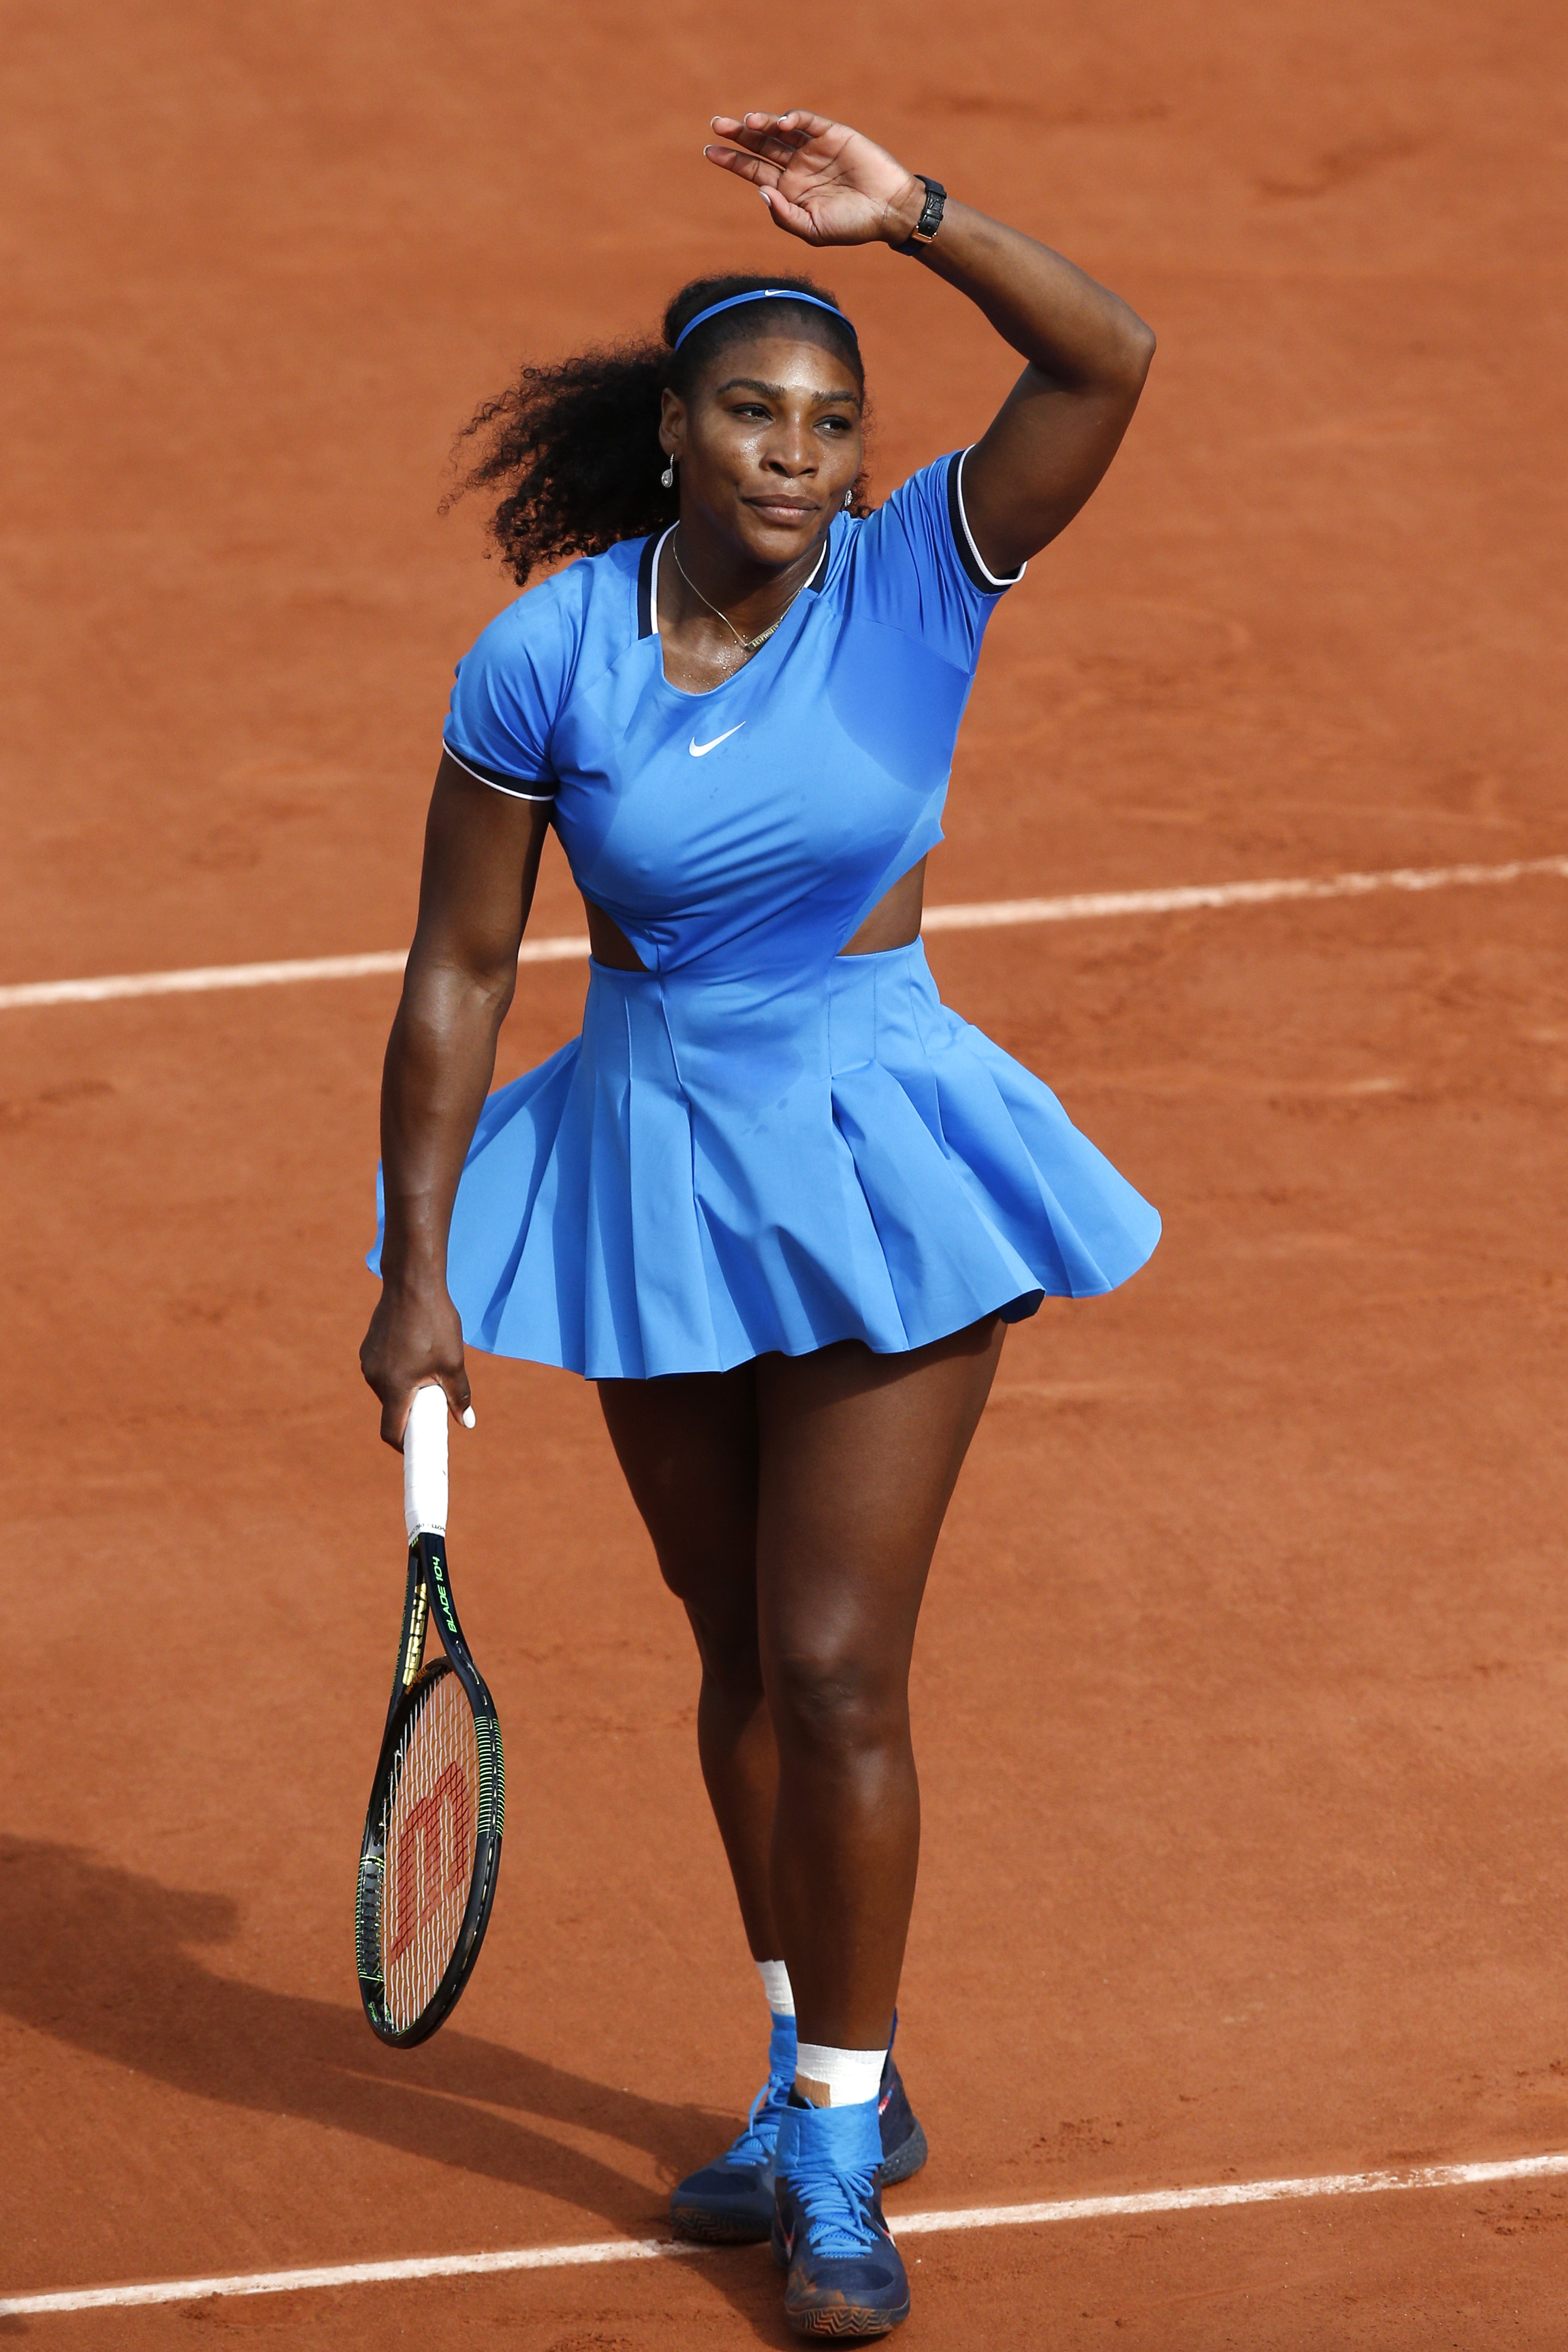 Serena Williams of the U.S. celebrates winning the third round match of the French Open tennis tournament against France's Kristina Mladenovic at the Roland Garros stadium in Paris, France, Saturday, May 28, 2016. (AP Photo/Christophe Ena)